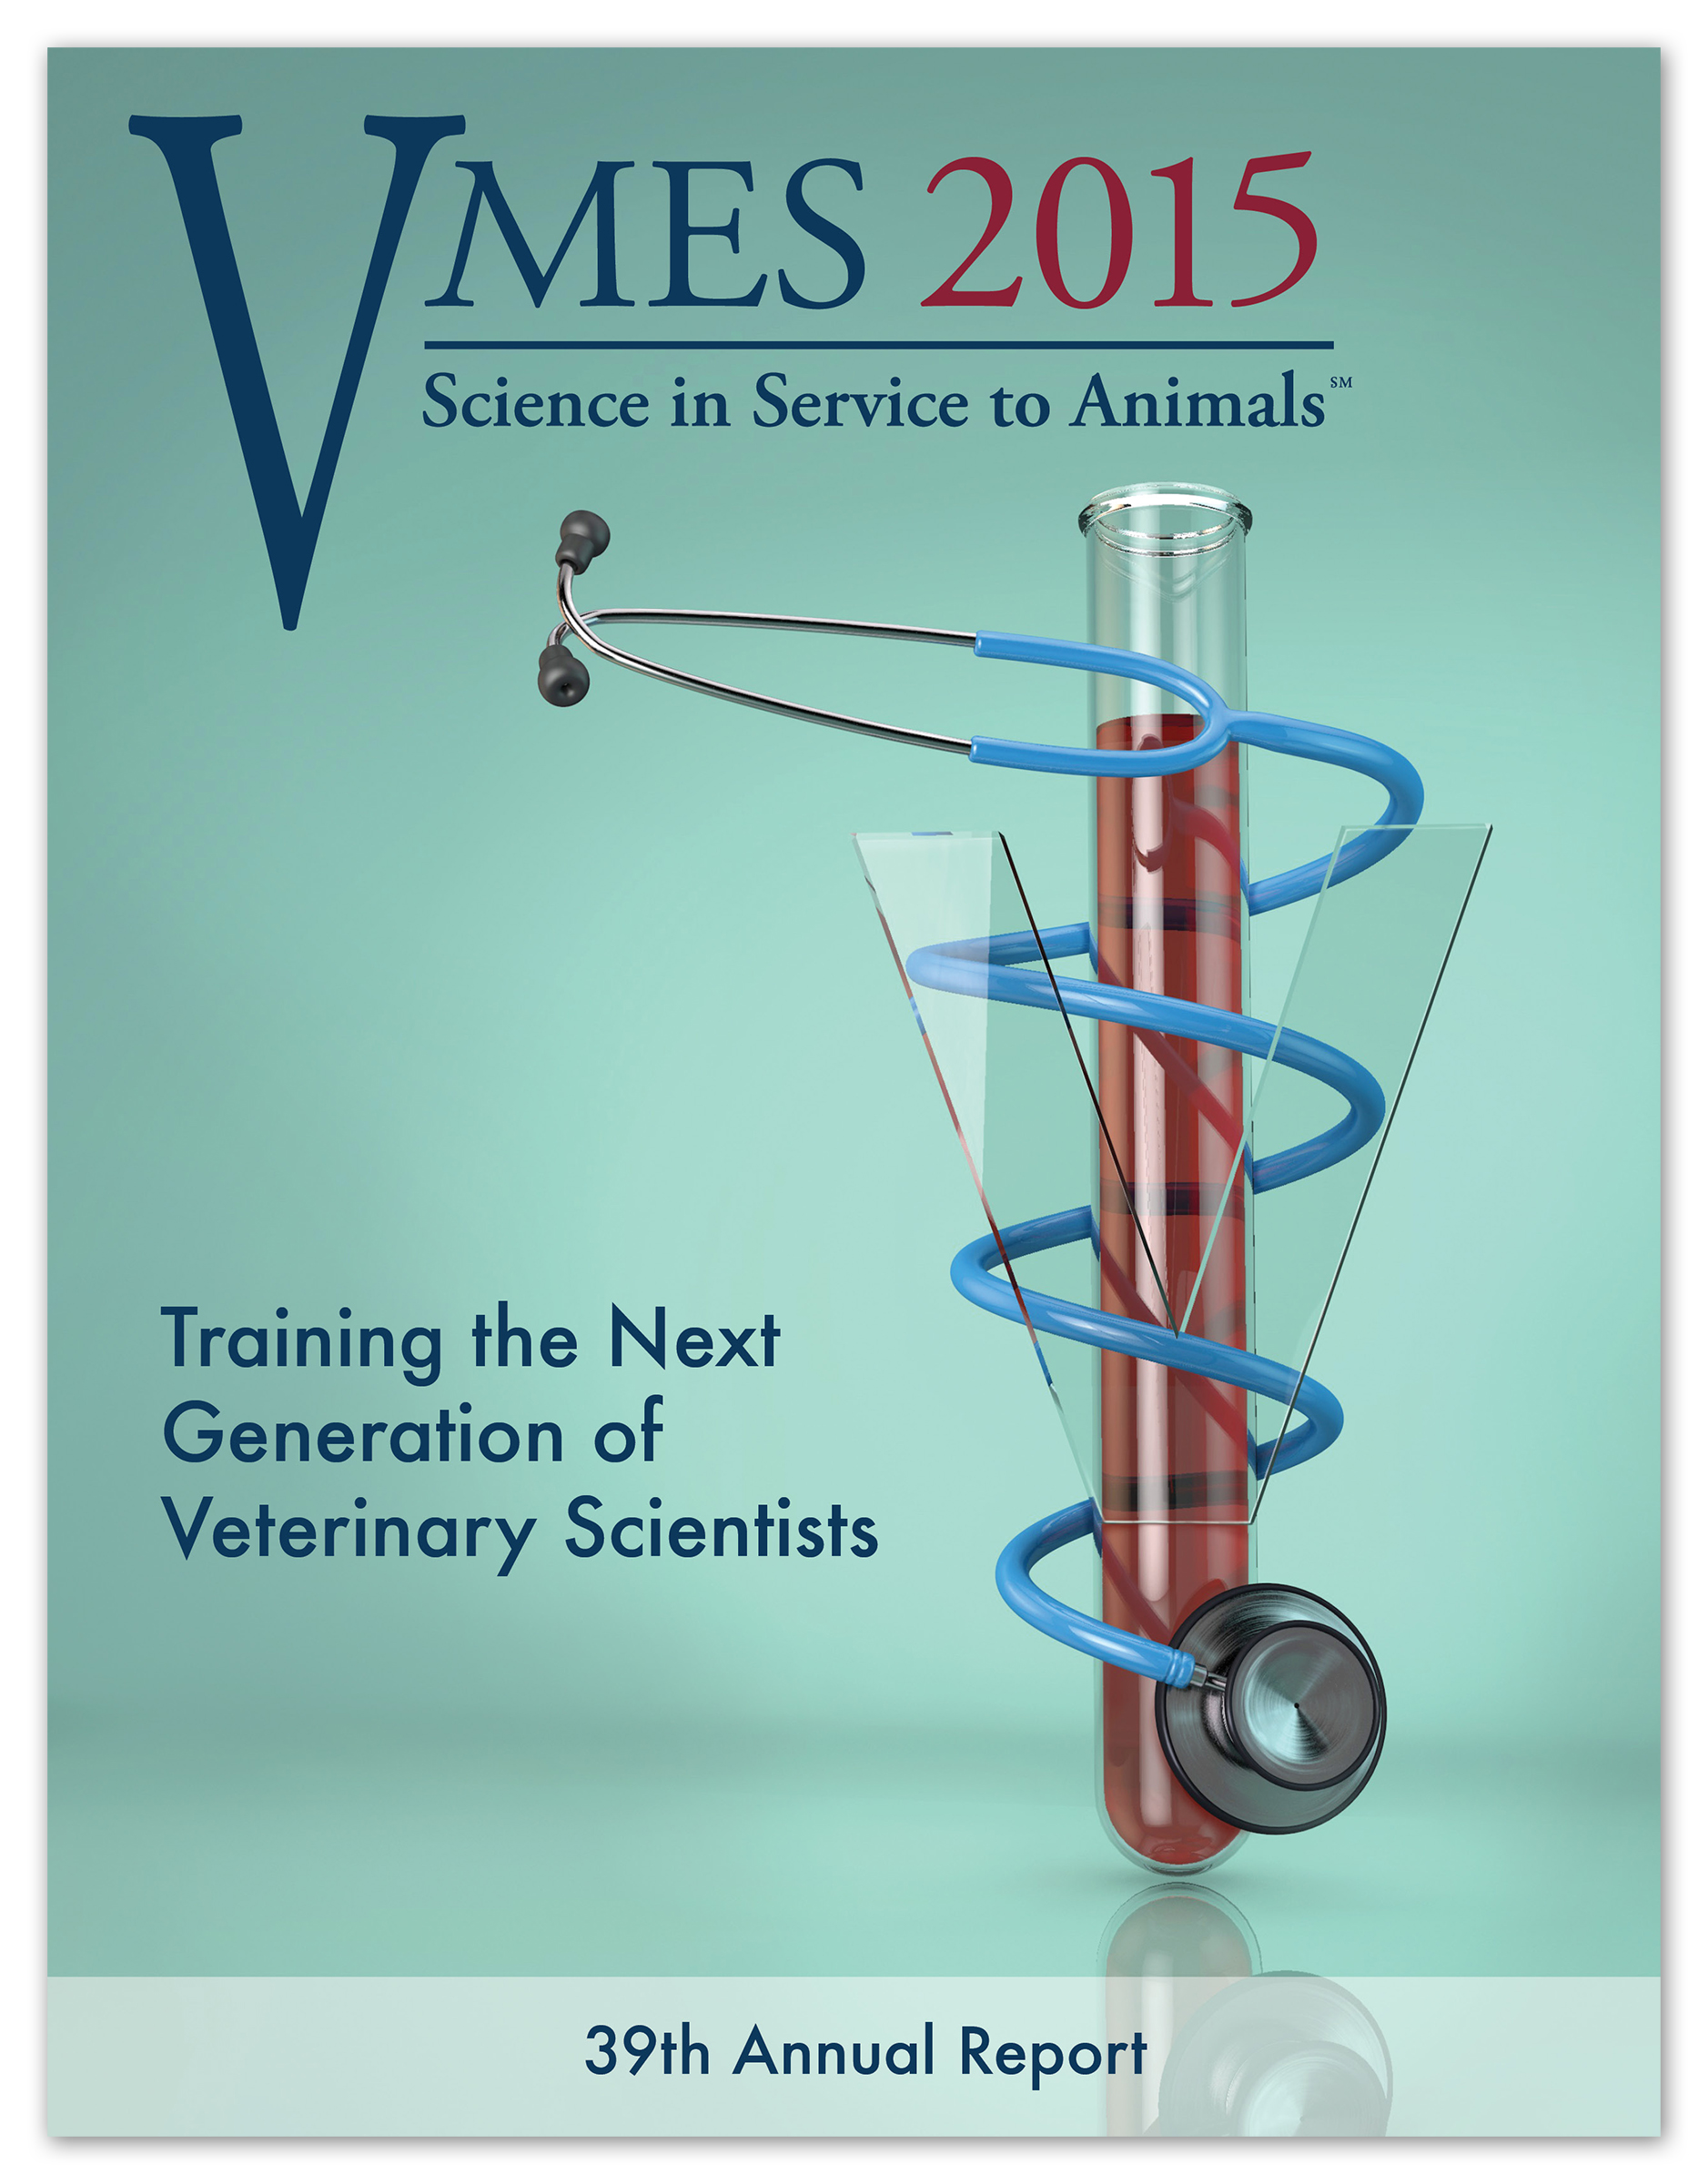 2015 VMES Report Cover   Medium: Maxon Cinema 4D,Photoshop, and InDesign  Objective: To create an editorial cover for a veterinary research publication addressing the importance of laboratory research in the service of animal health.  © 2015 The University of Georgia